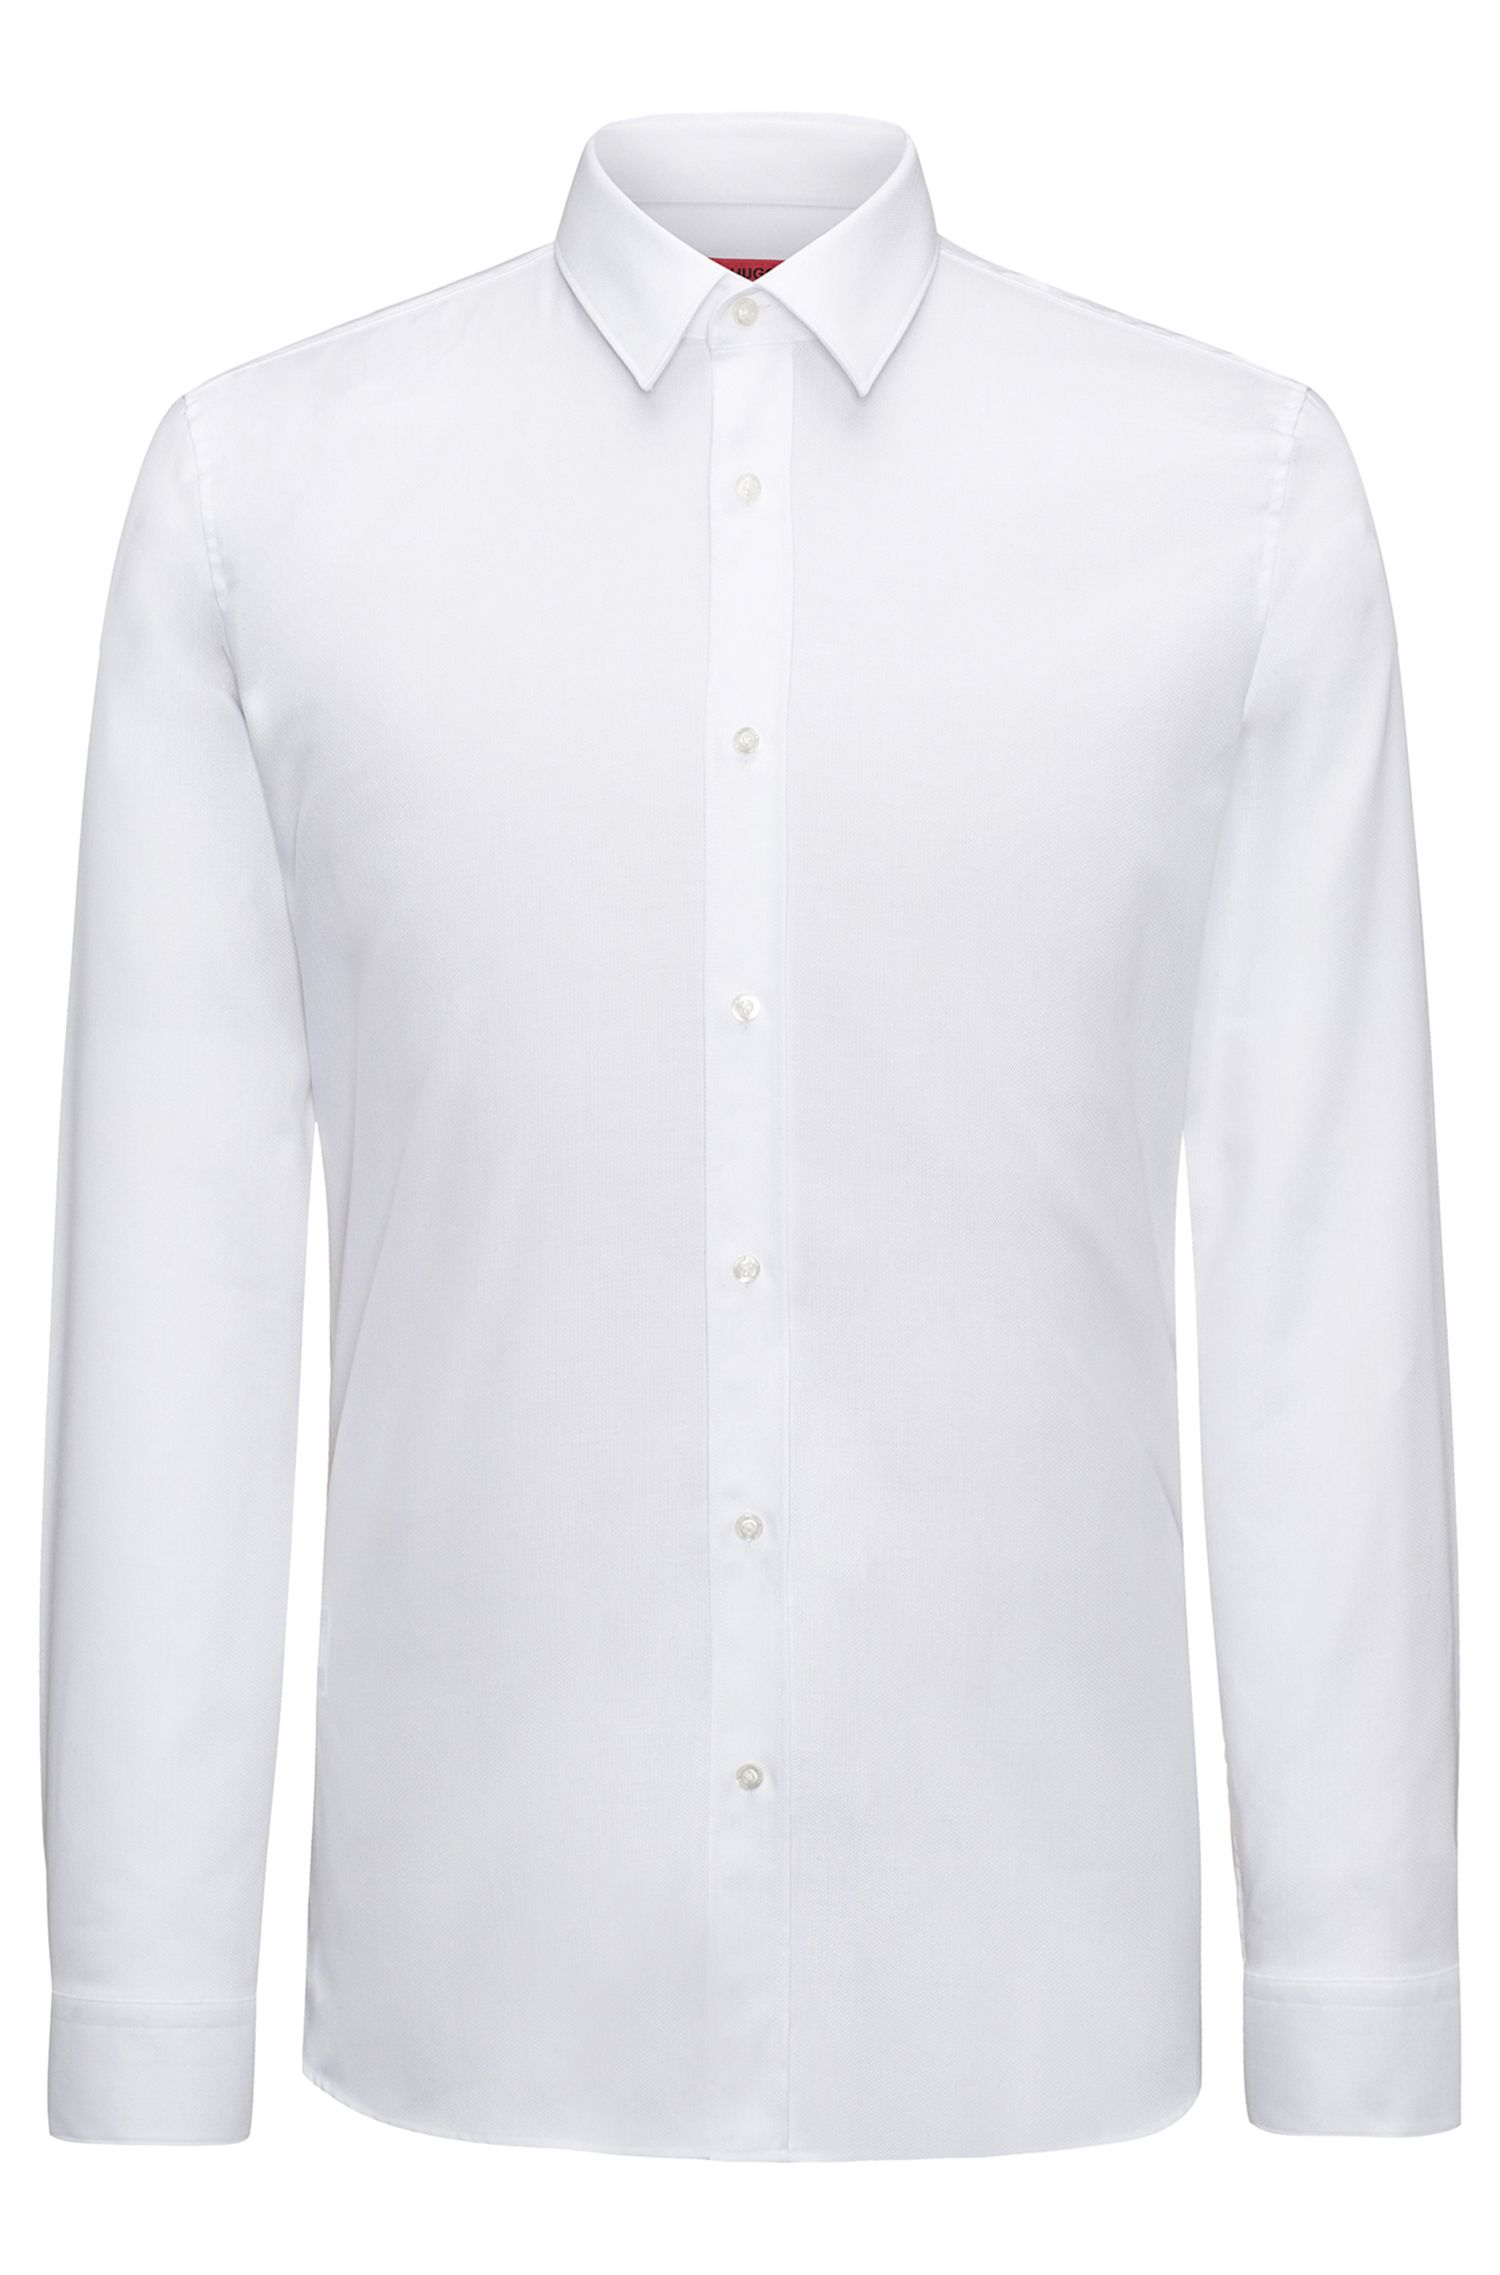 Herringbone Dress Shirt, Extra Slim Fit | Elisha